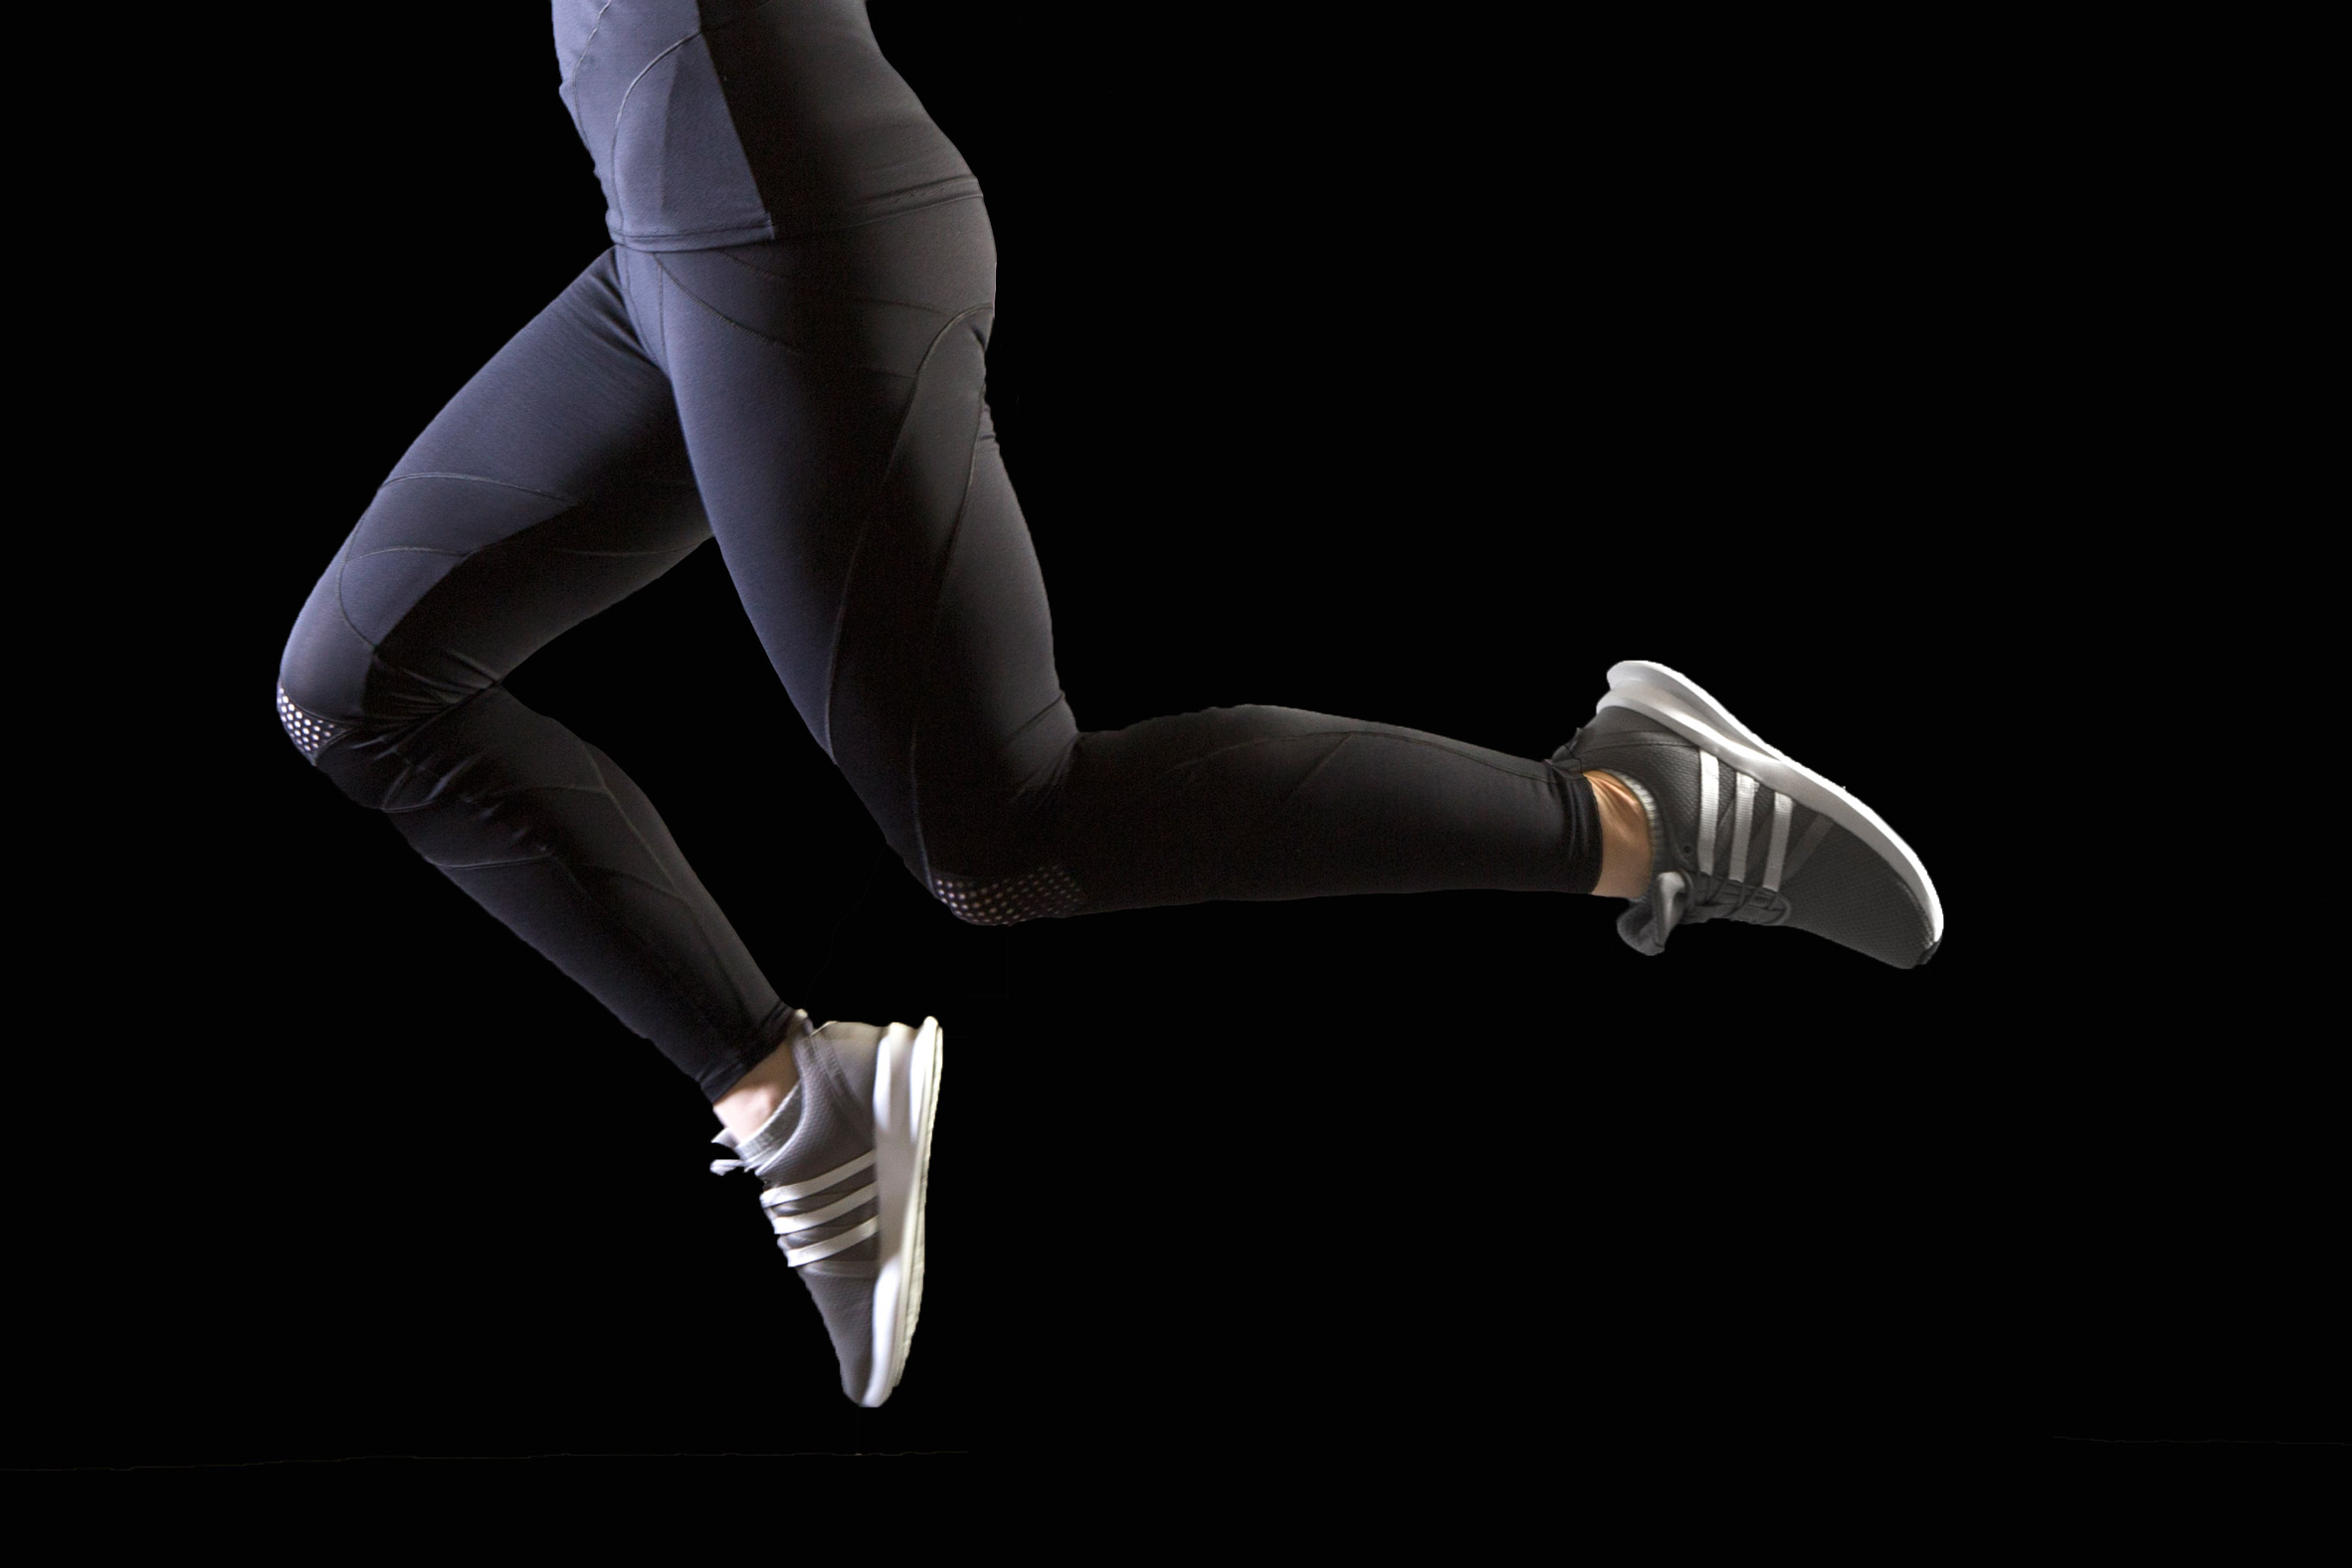 New Contour Compression activewear comes with built-in sports tape